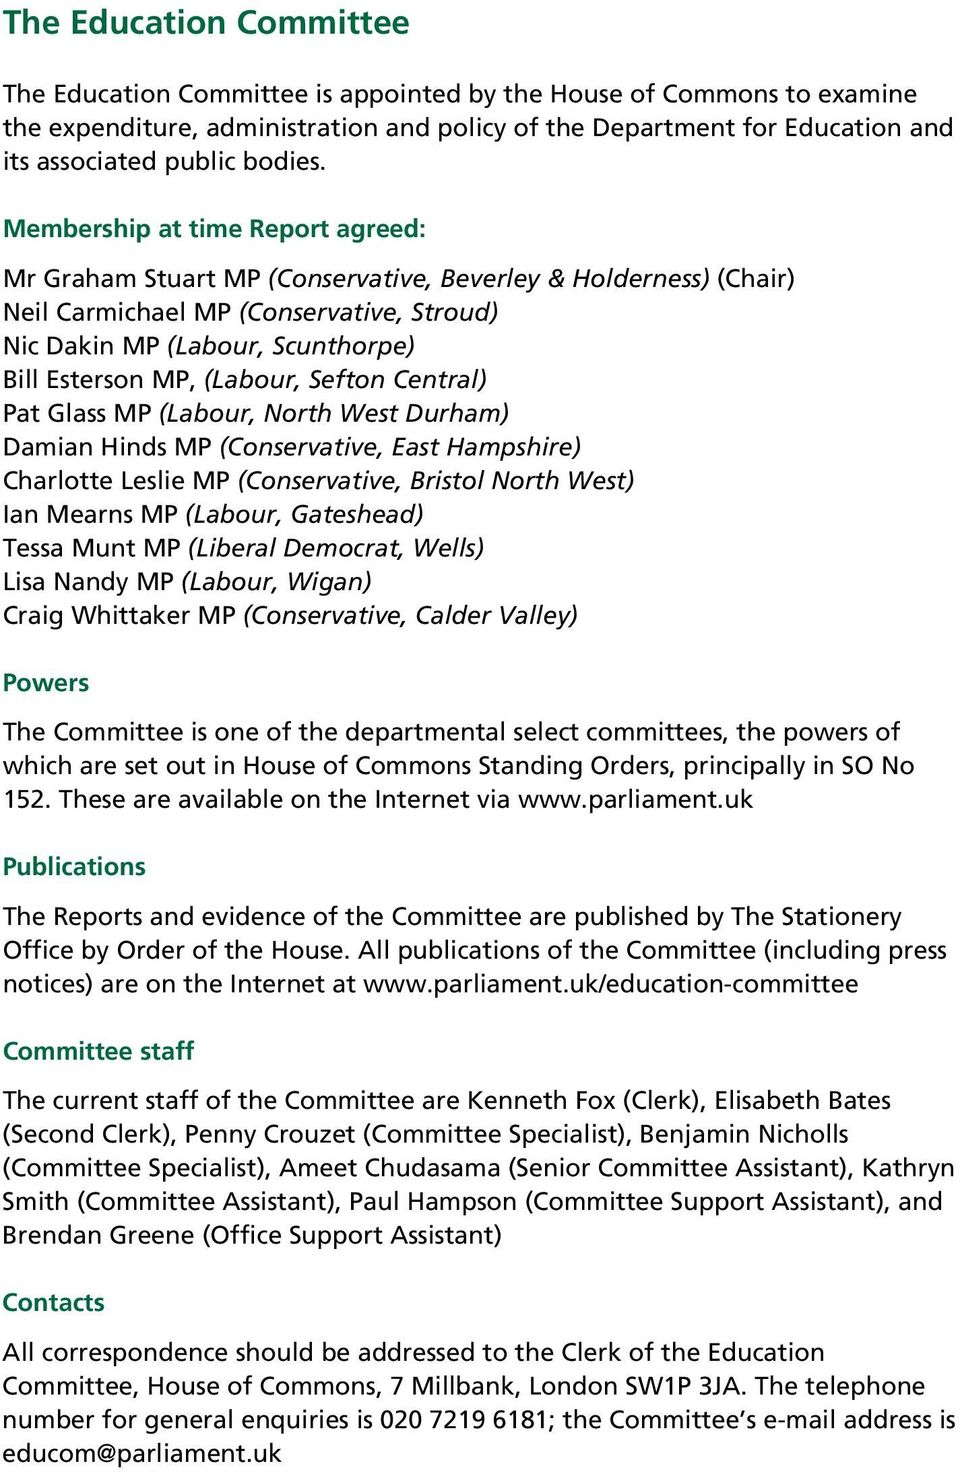 Membership at time Report agreed: Mr Graham Stuart MP (Conservative, Beverley & Holderness) (Chair) Neil Carmichael MP (Conservative, Stroud) Nic Dakin MP (Labour, Scunthorpe) Bill Esterson MP,